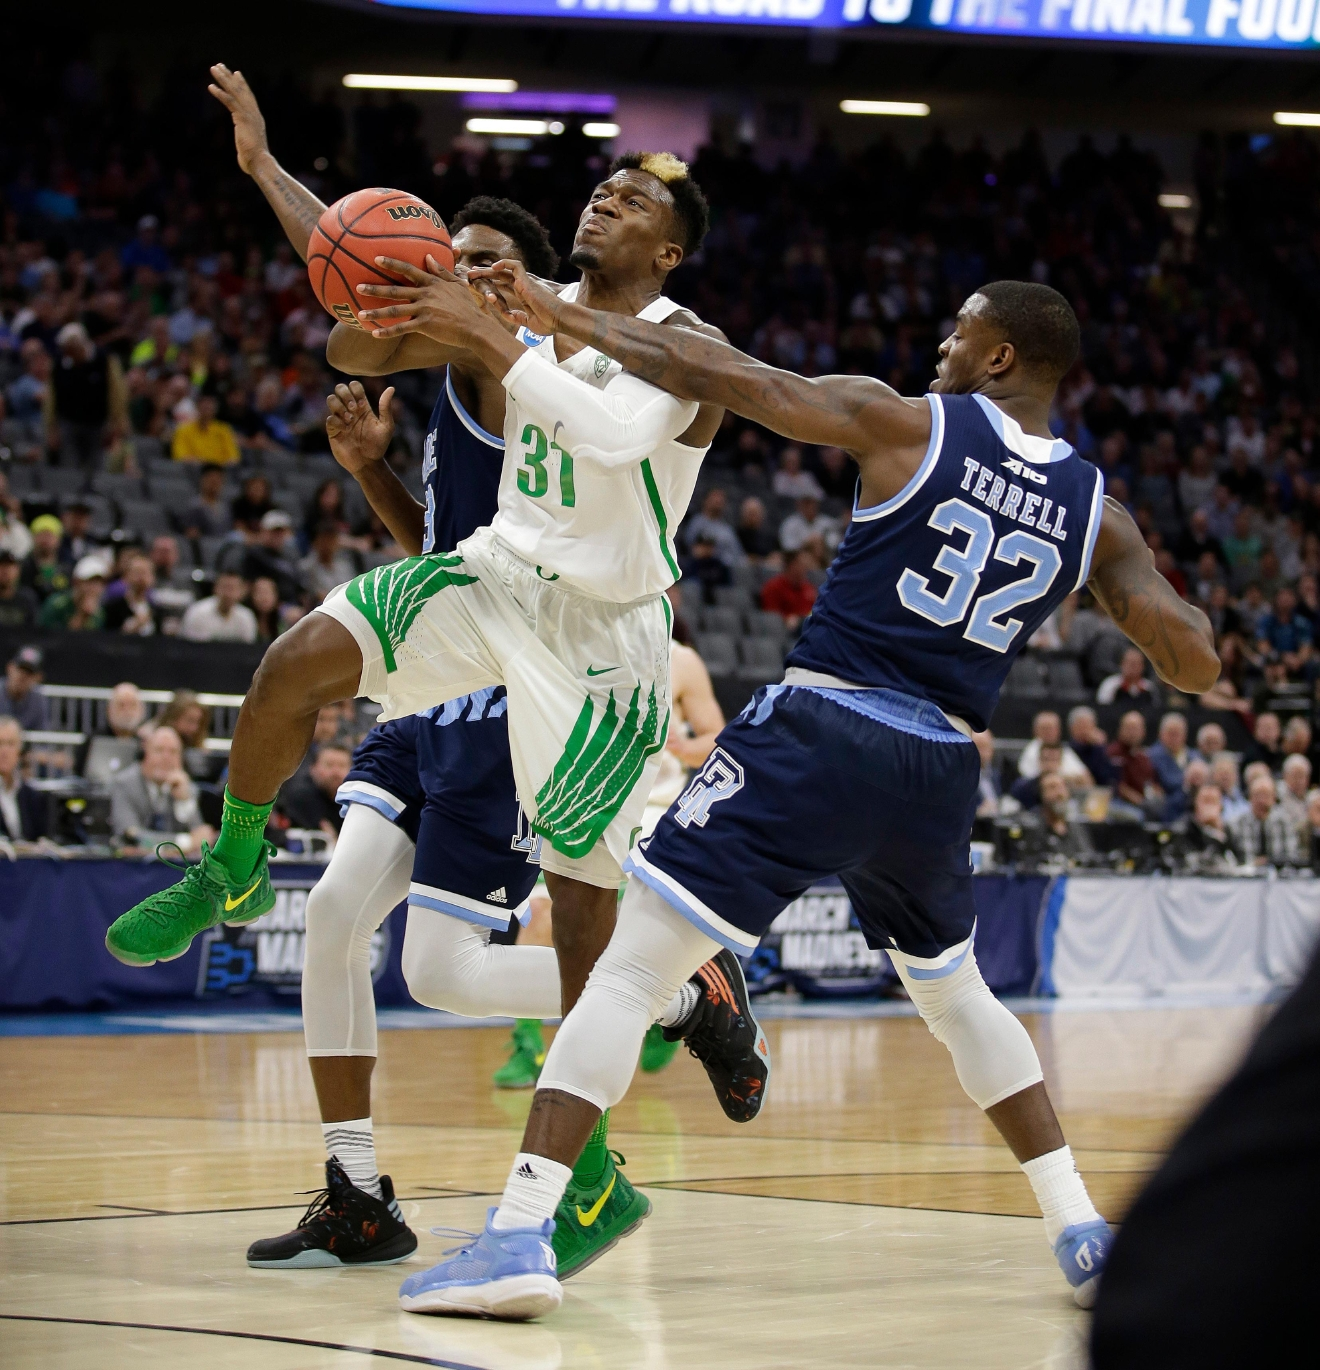 Oregon guard Dylan Ennis, left, is fouled by Rhode Island guard Jared Terrell, right, during the first half of a second-round game of the NCAA men's college basketball tournament in Sacramento, Calif., Sunday, March 19, 2017. (AP Photo/Rich Pedroncelli)